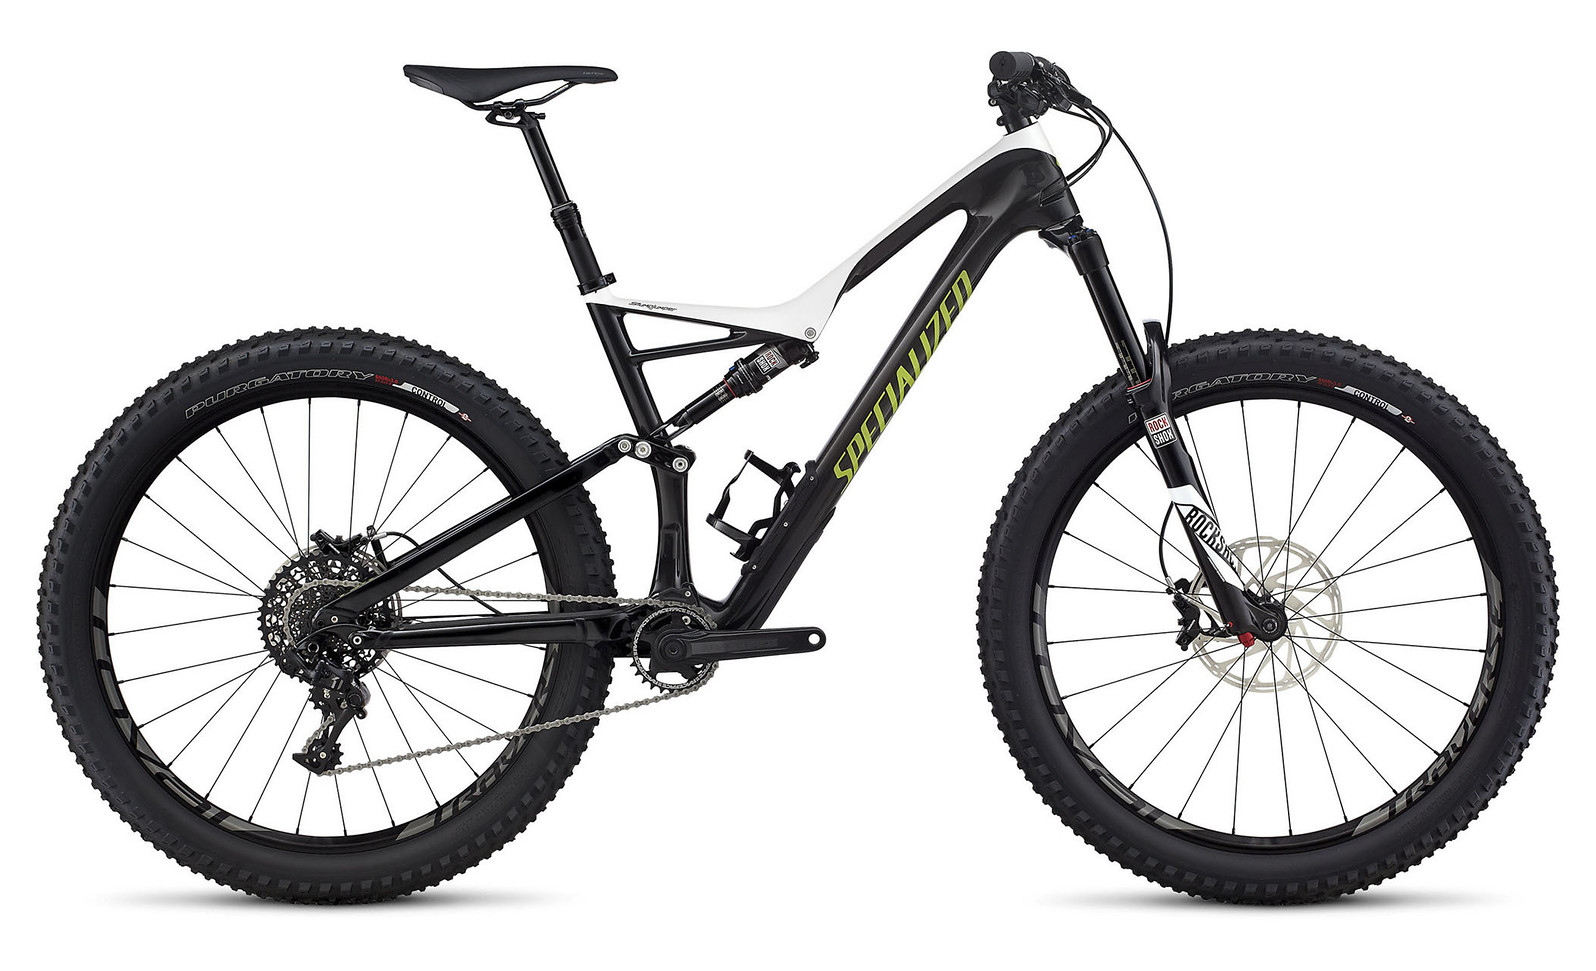 2017 Specialized Stumpjumper FSR Expert Carbon 6Fattie